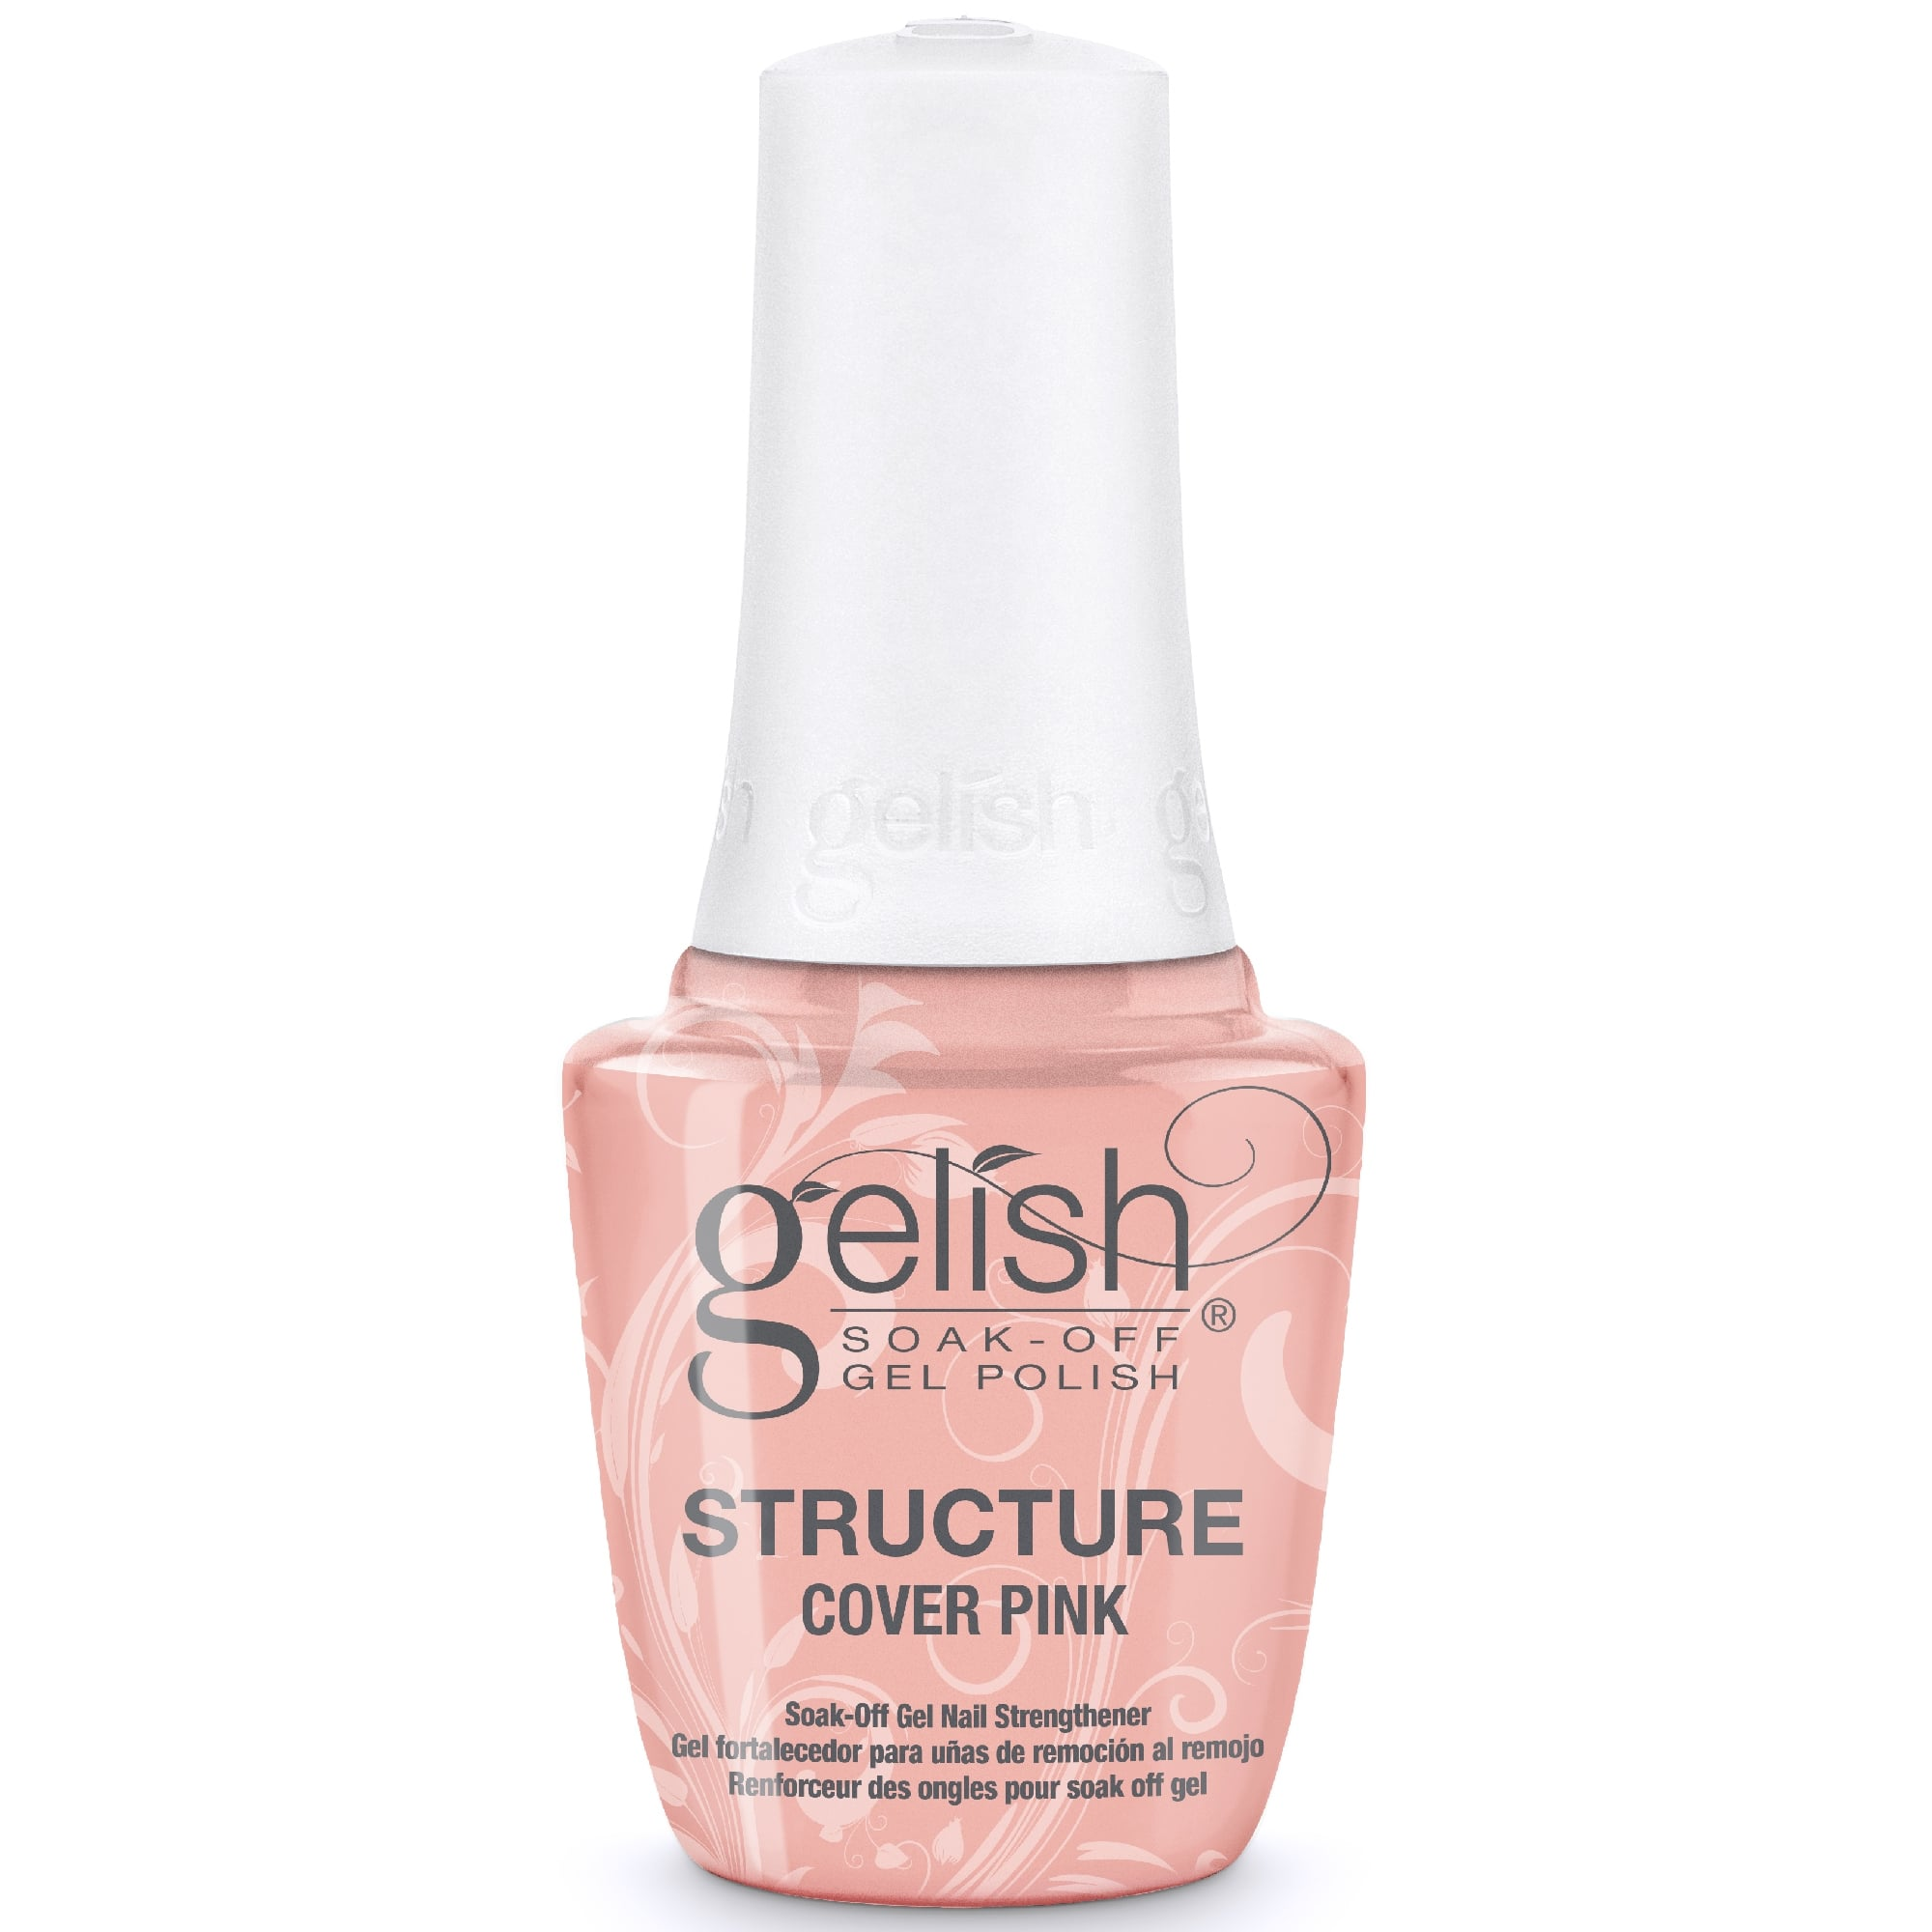 Gelish STRUCTURE Soak-Off Strengthener - Cover Pink (1140005) 15ml